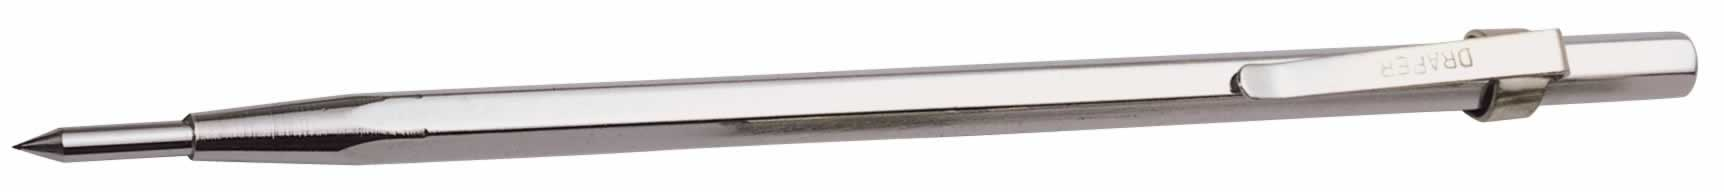 CARBIDE TIP POCKET SCRIBER